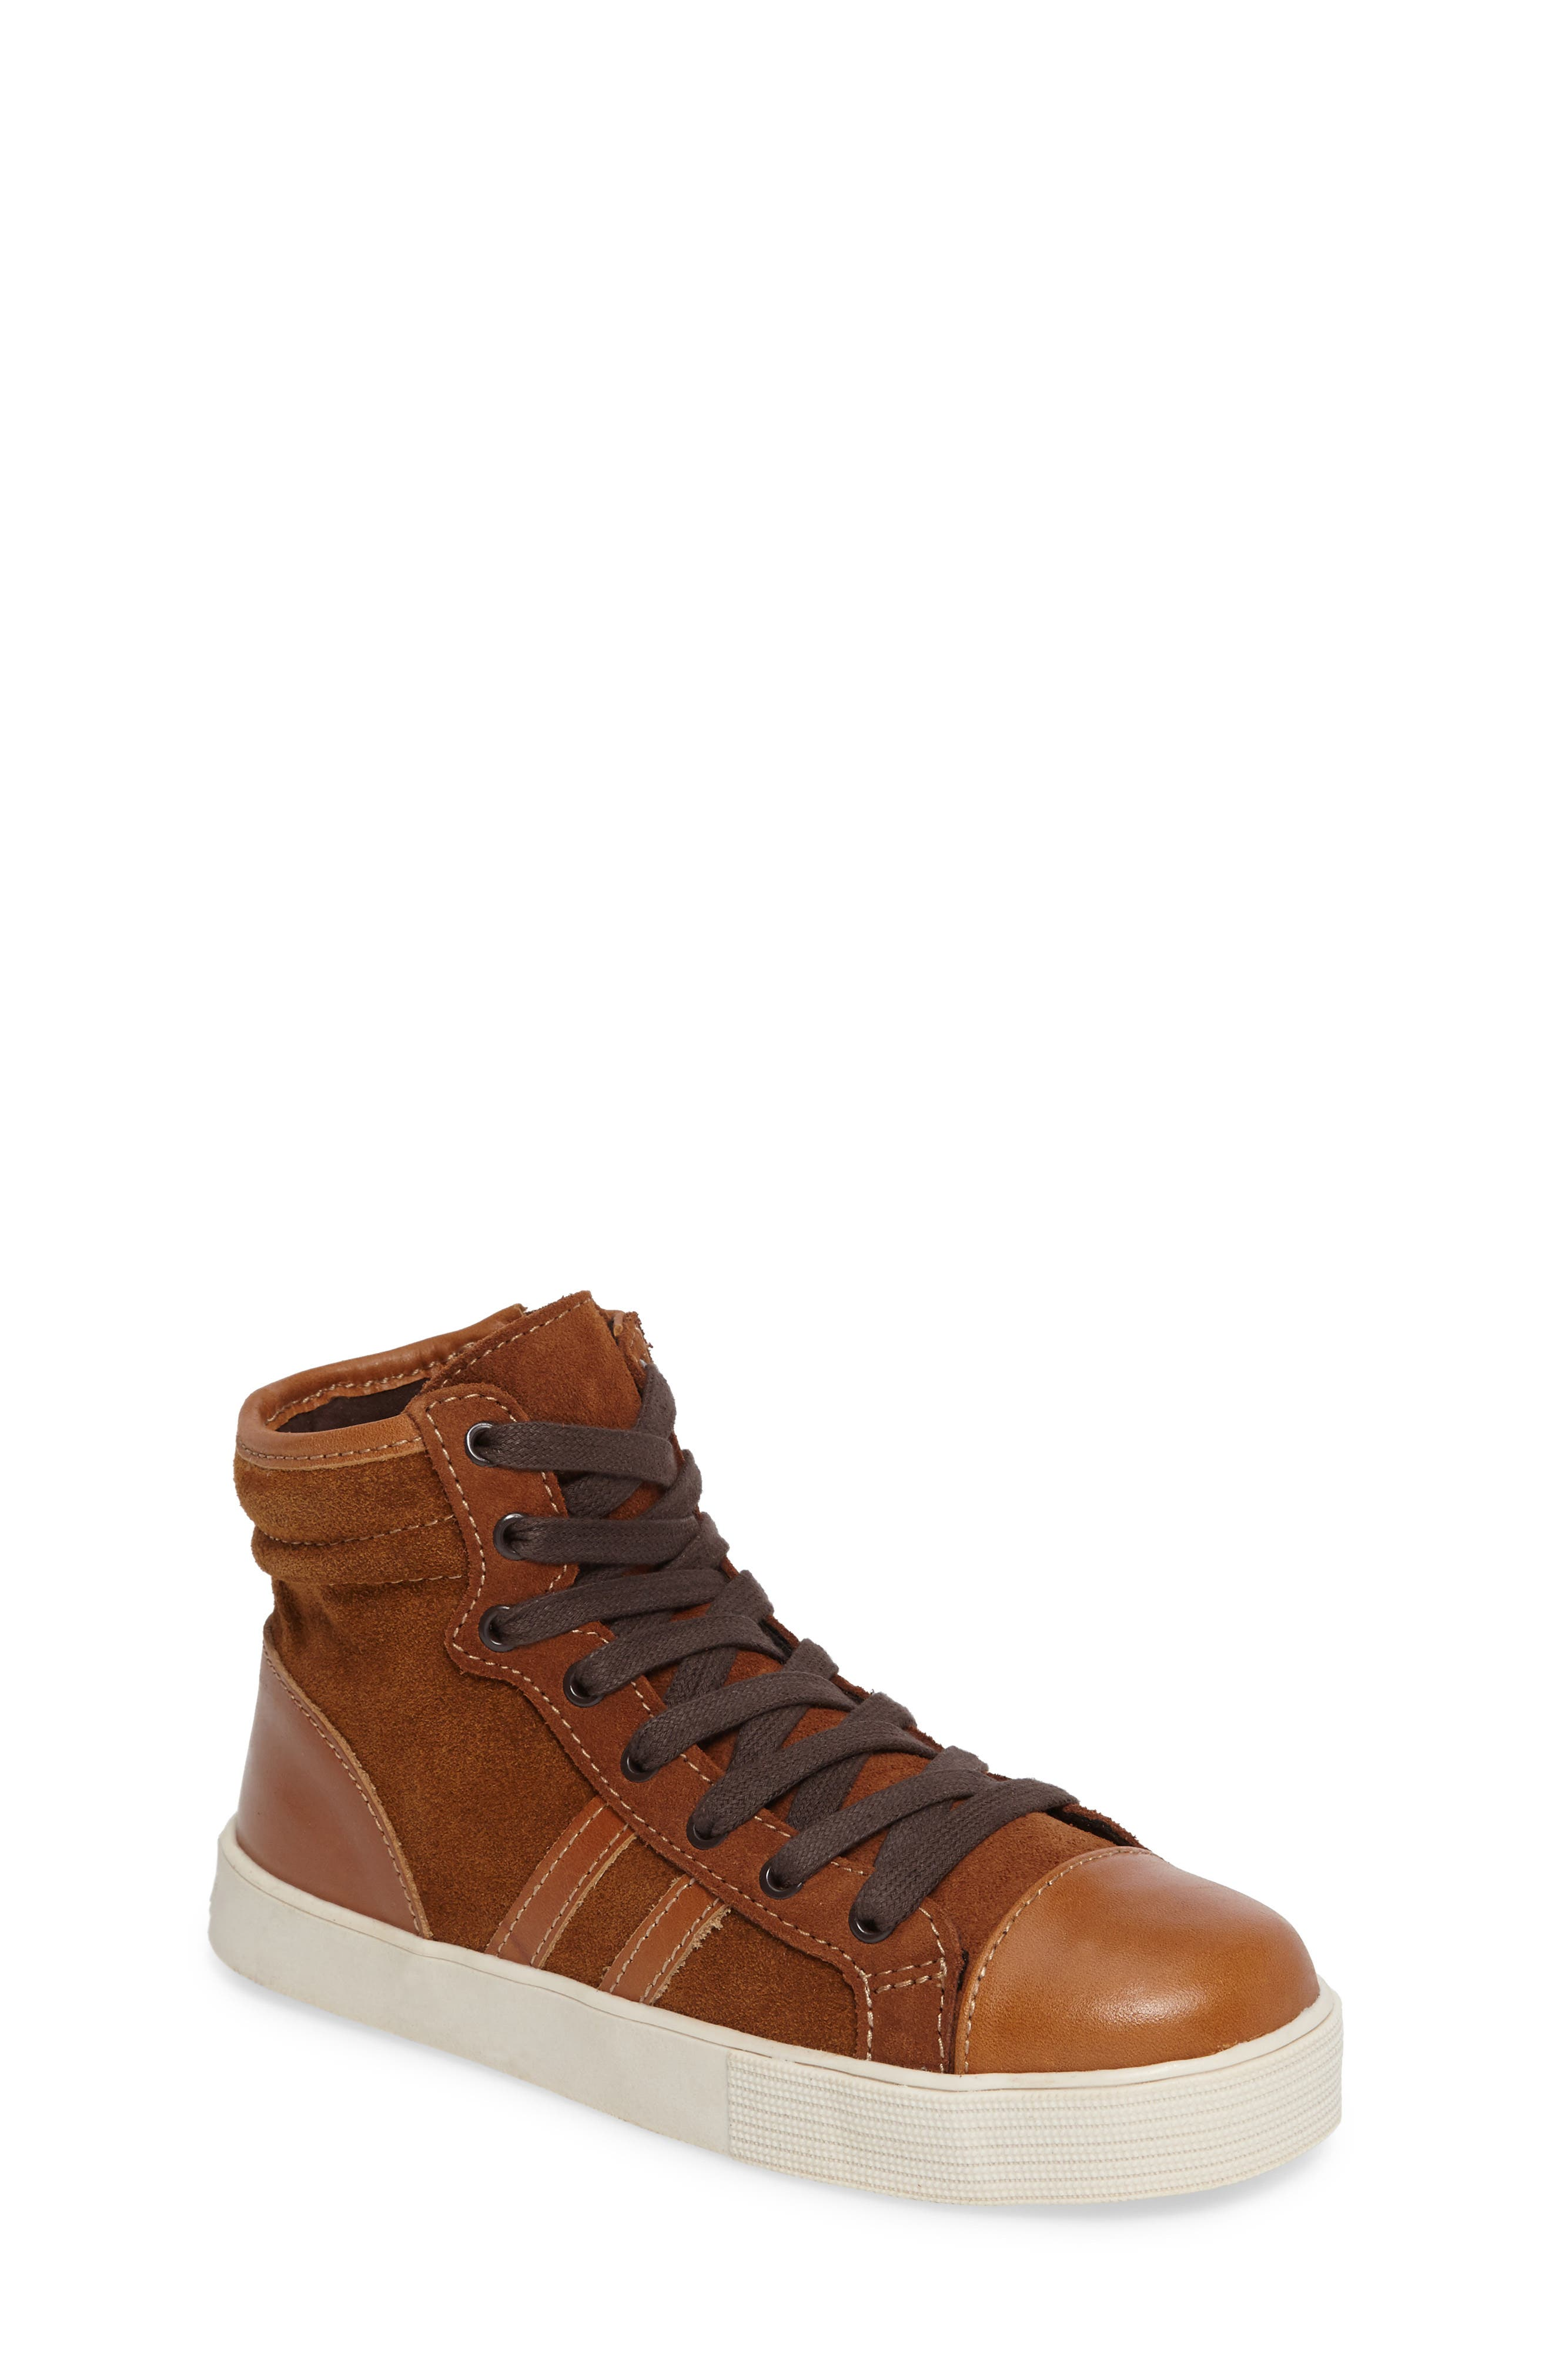 KENNETH COLE NEW YORK Jay Top High-Top Zip Sneaker